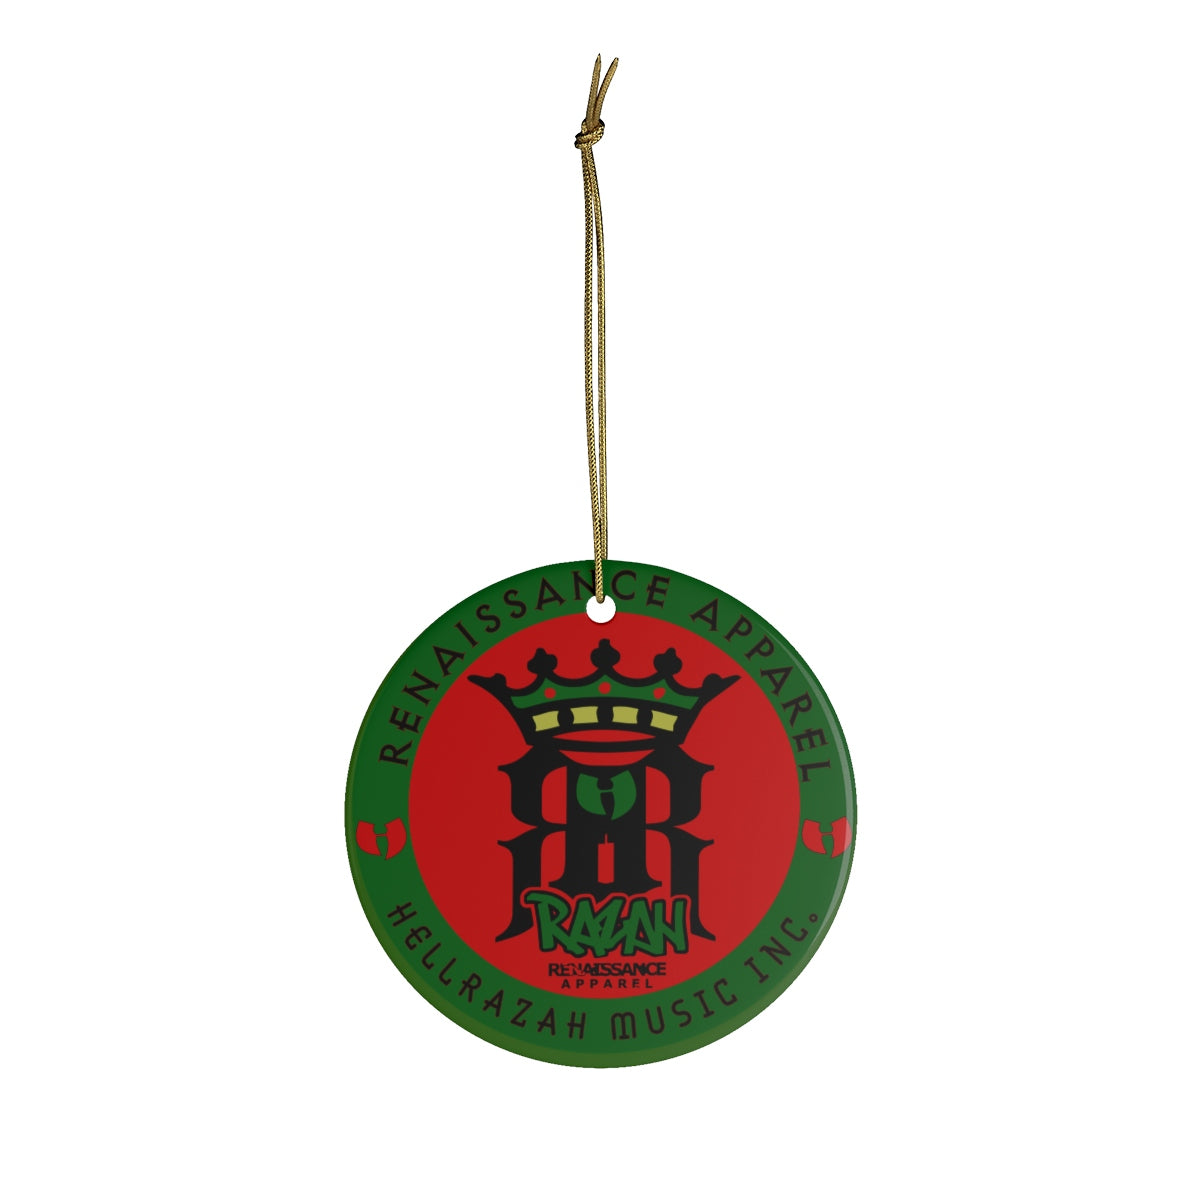 Limited Edition HellRazah Music Inc . - Renaissance Apparel Ceramic Christmas Ornament Tree Decoration